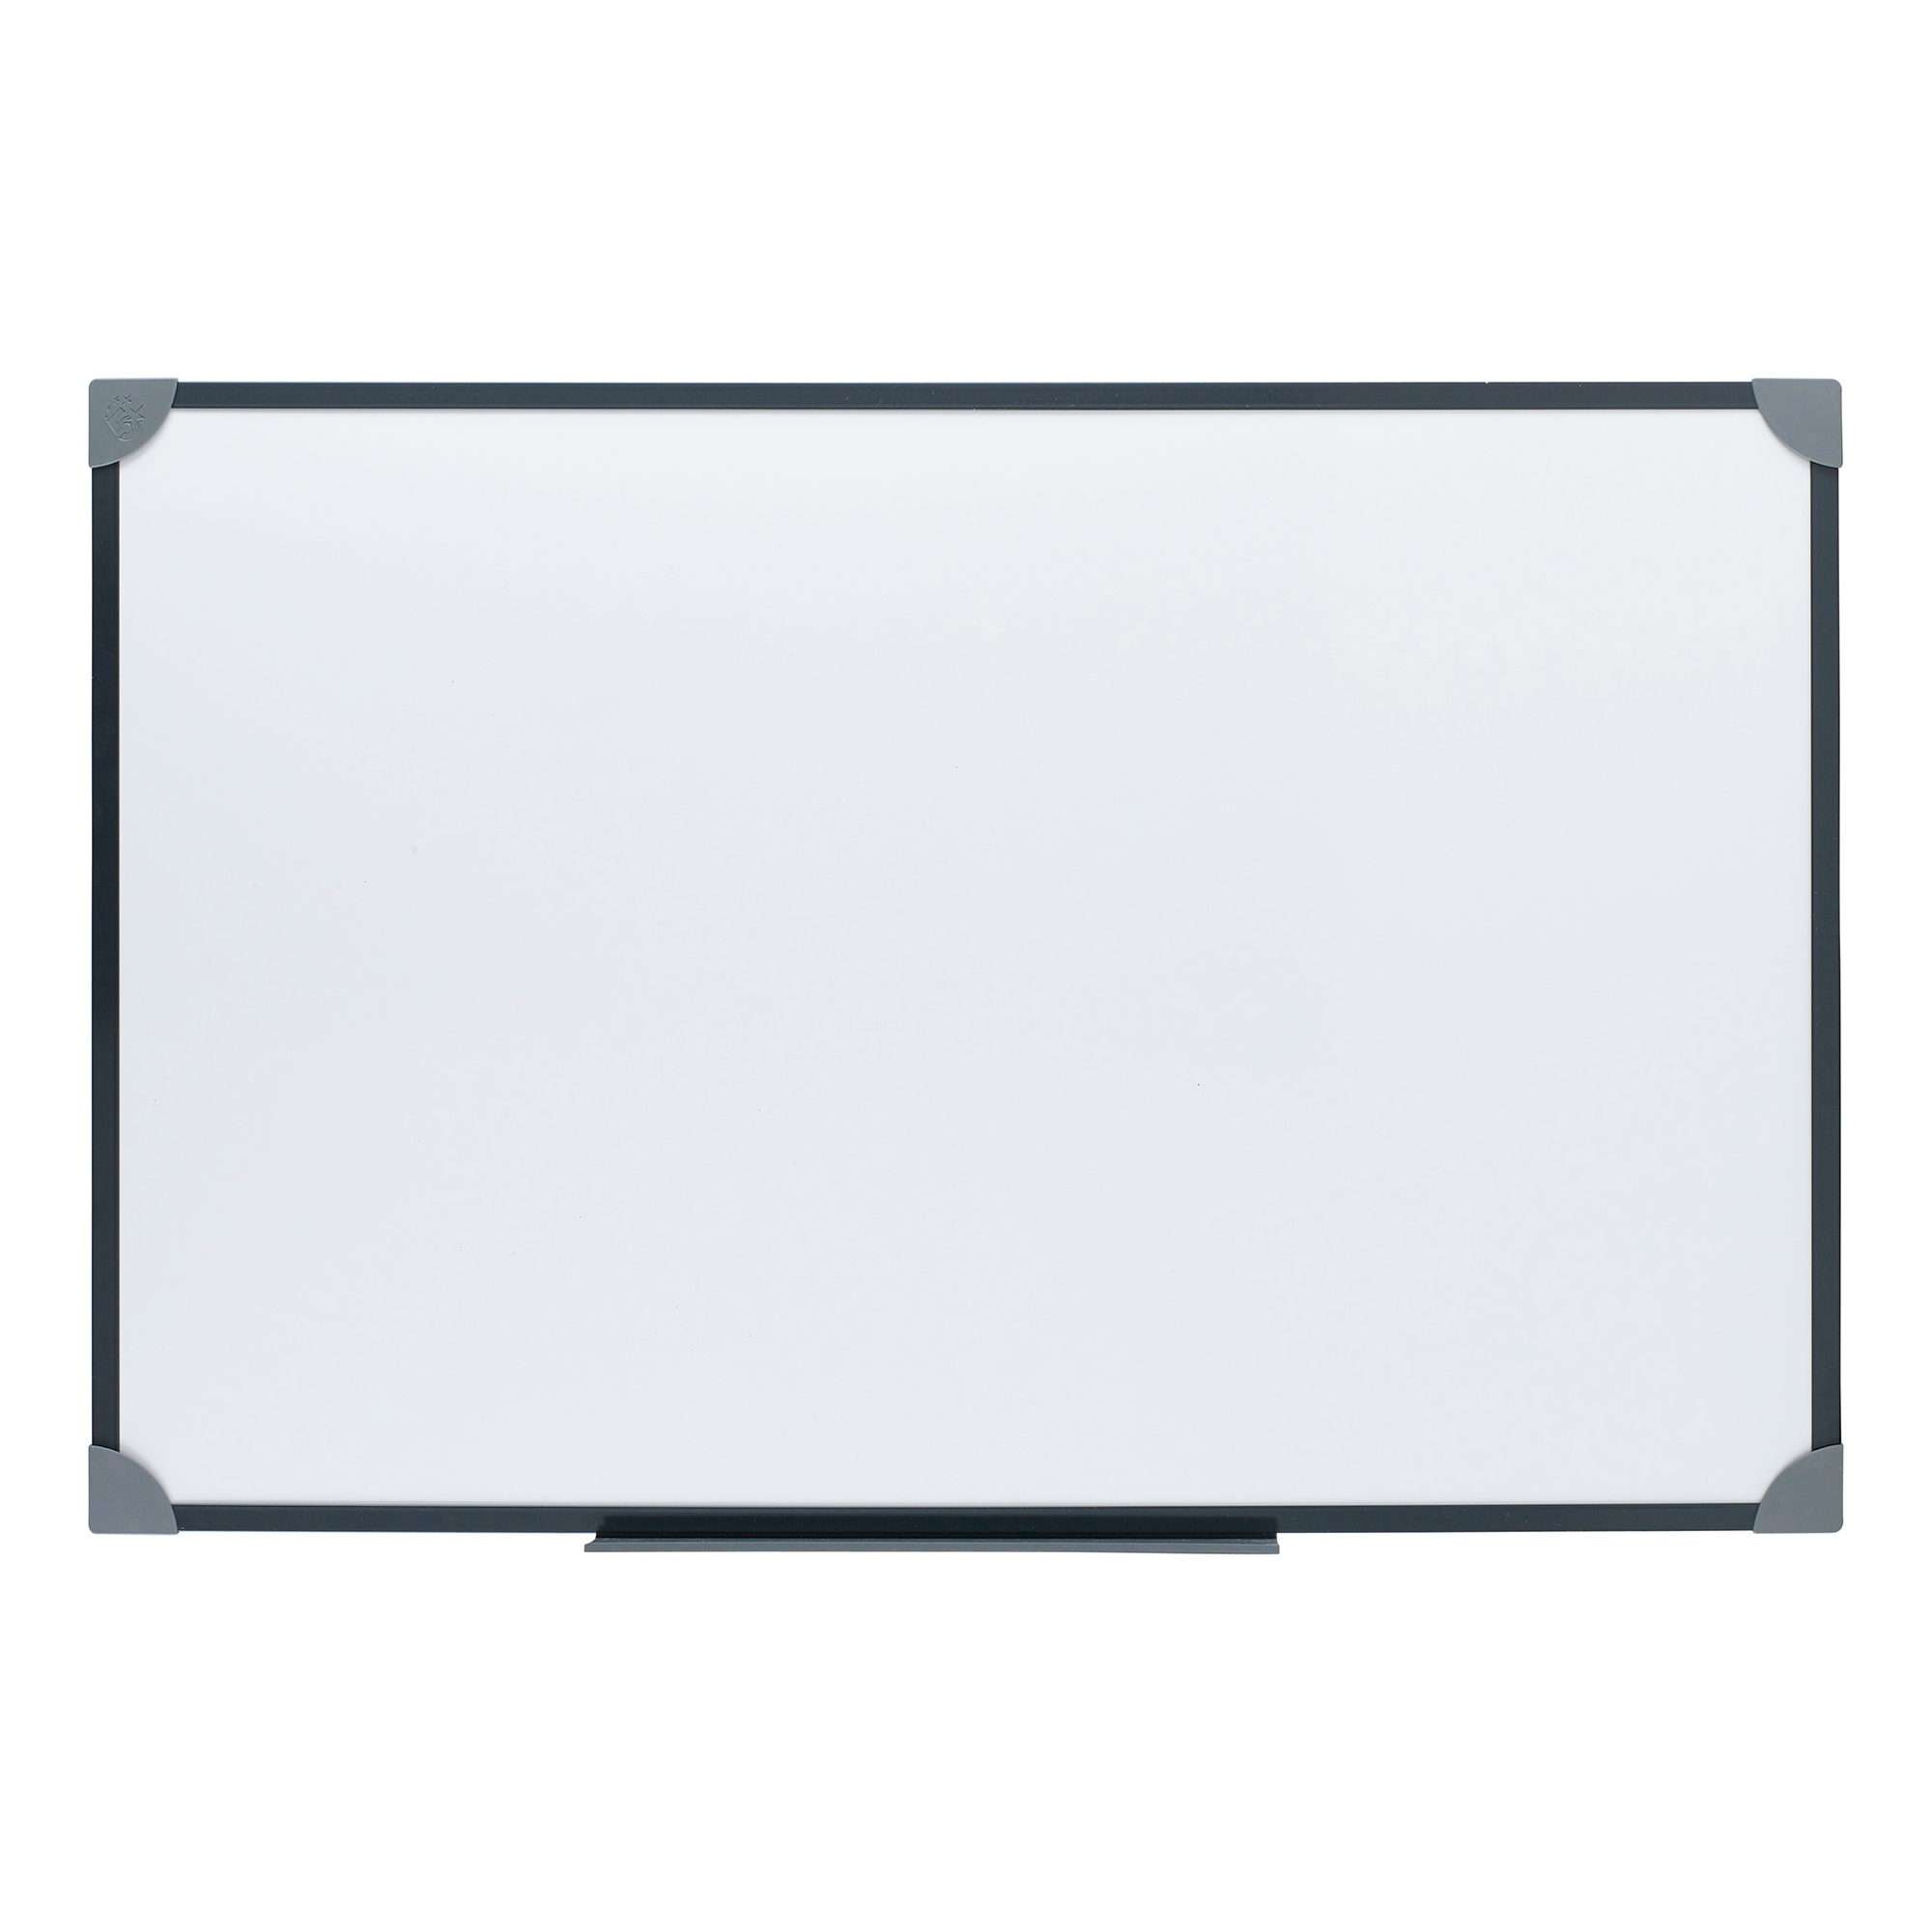 5 Star Office Drywipe Board Magnetic Lightweight with Fixing Kit and Pen Tray 900x600mm